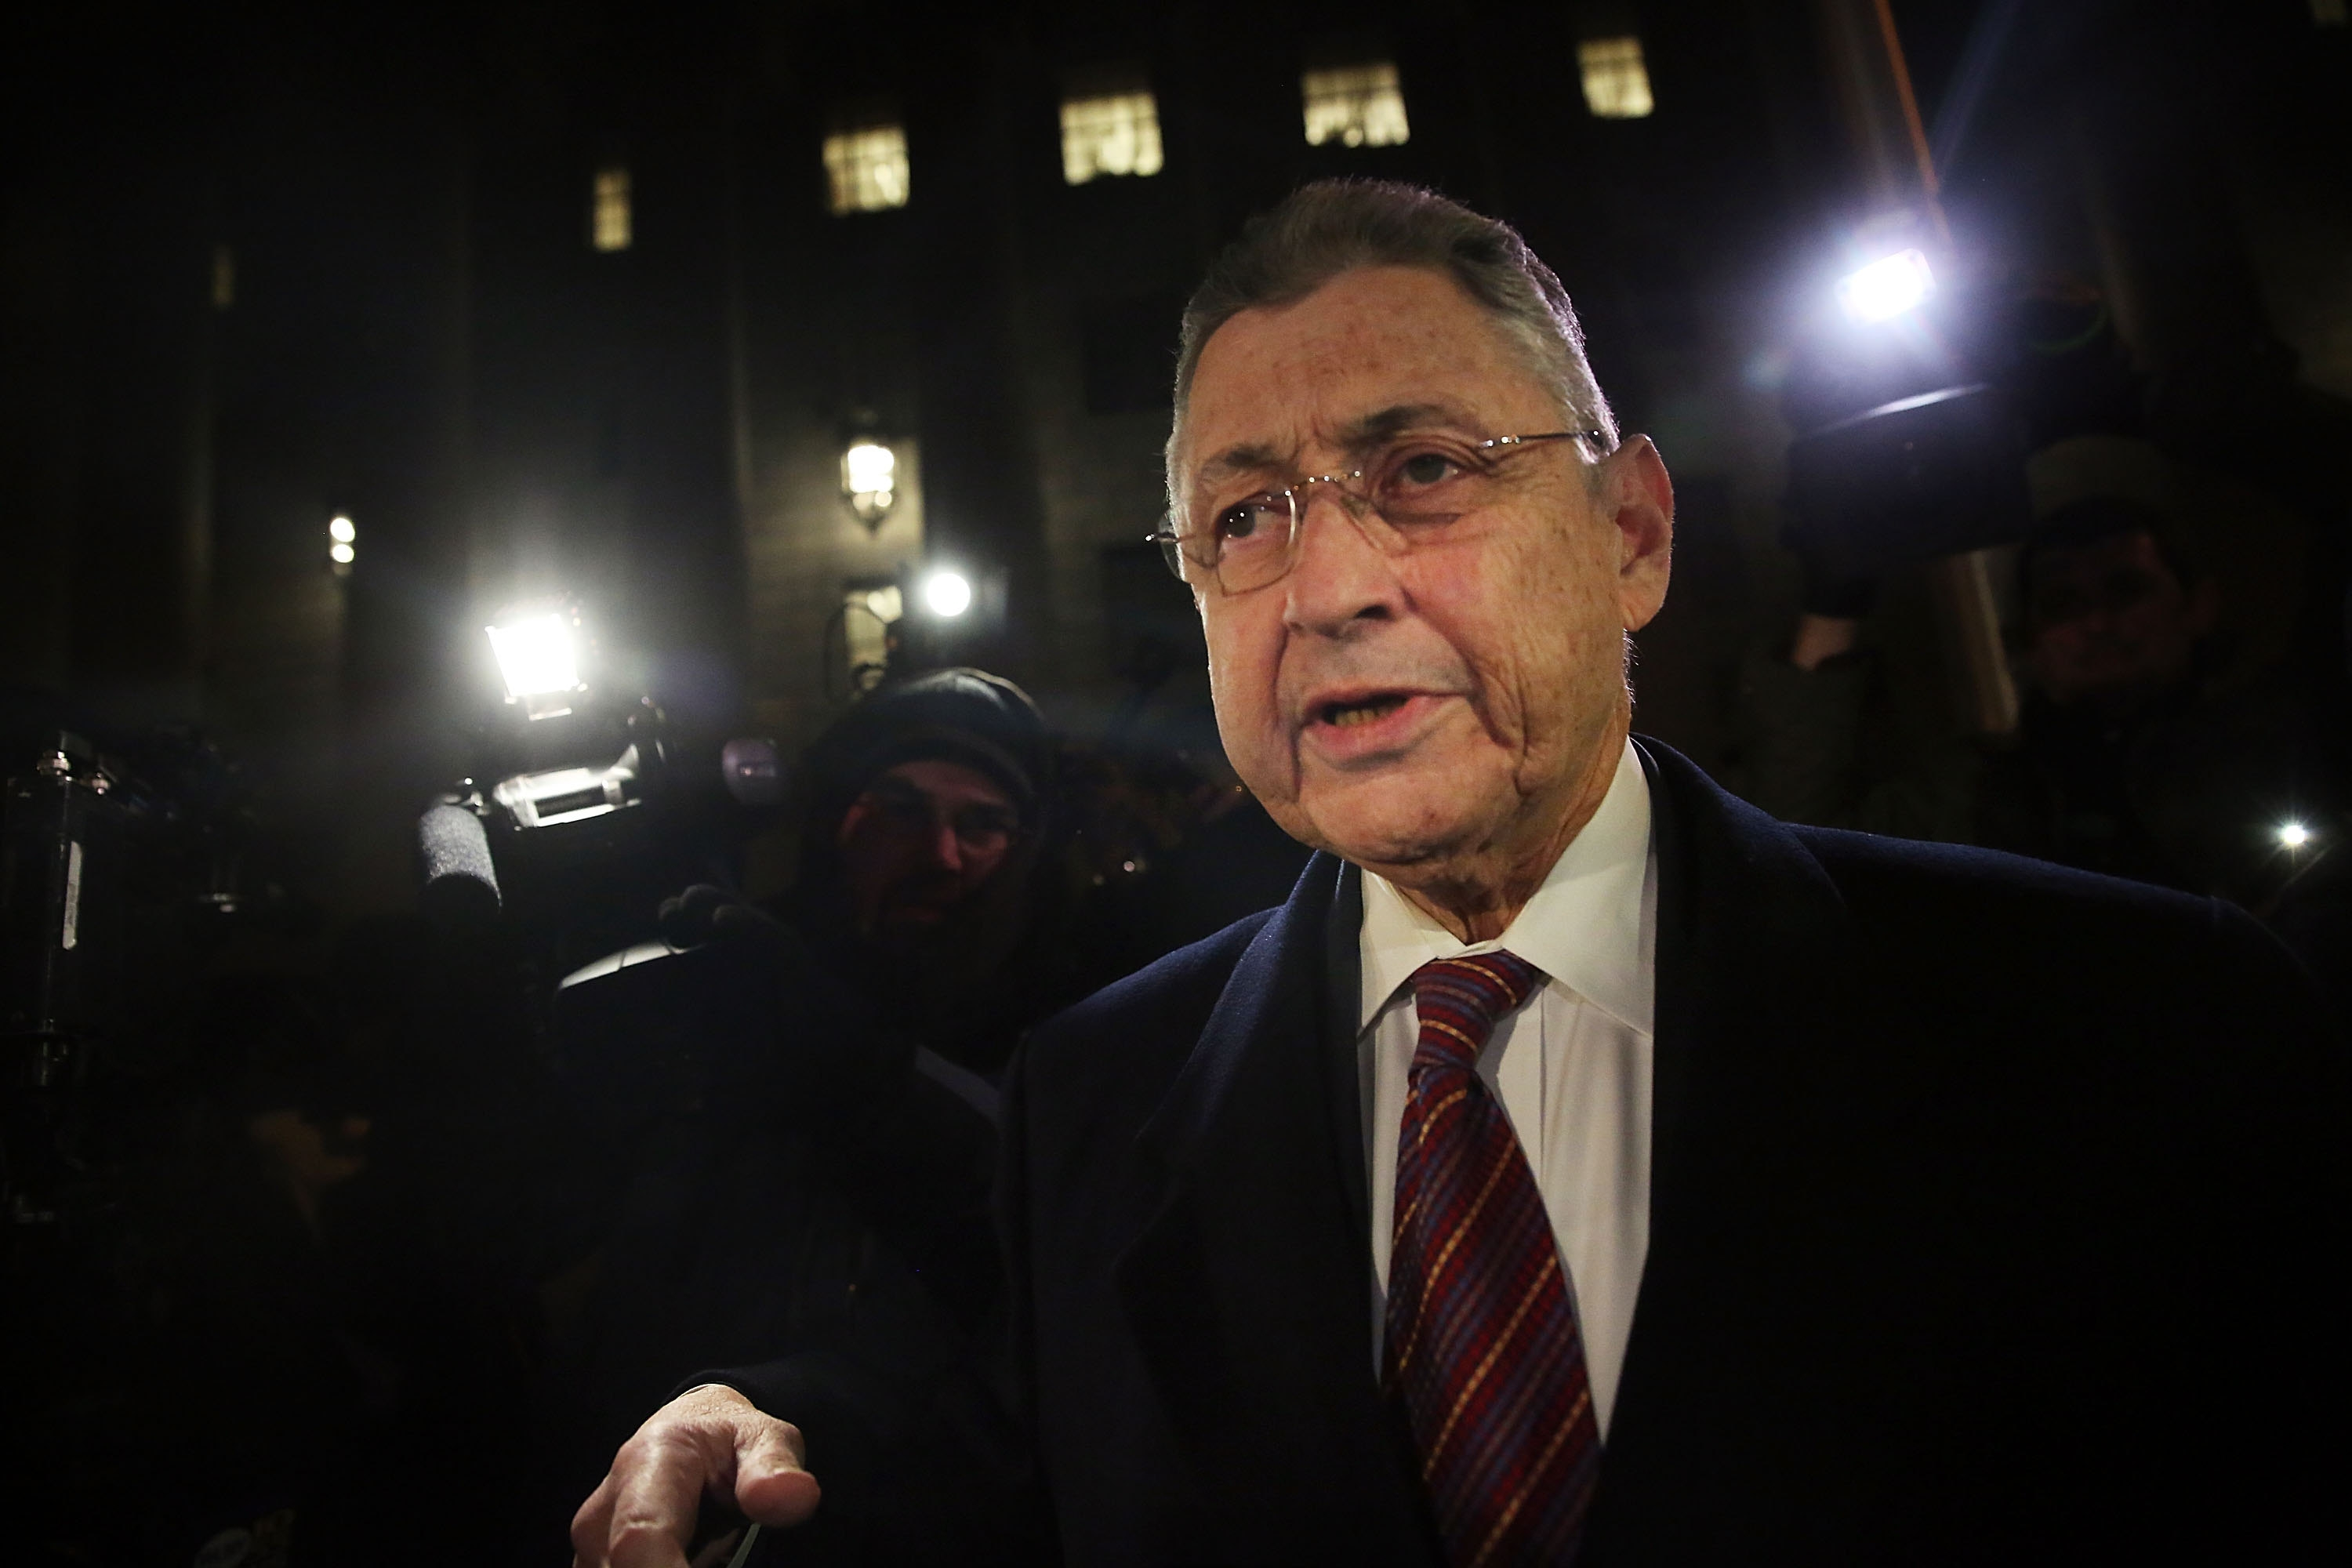 Former Assembly Speaker Sheldon Silver leaves federal court after being convicted of corruption charges.